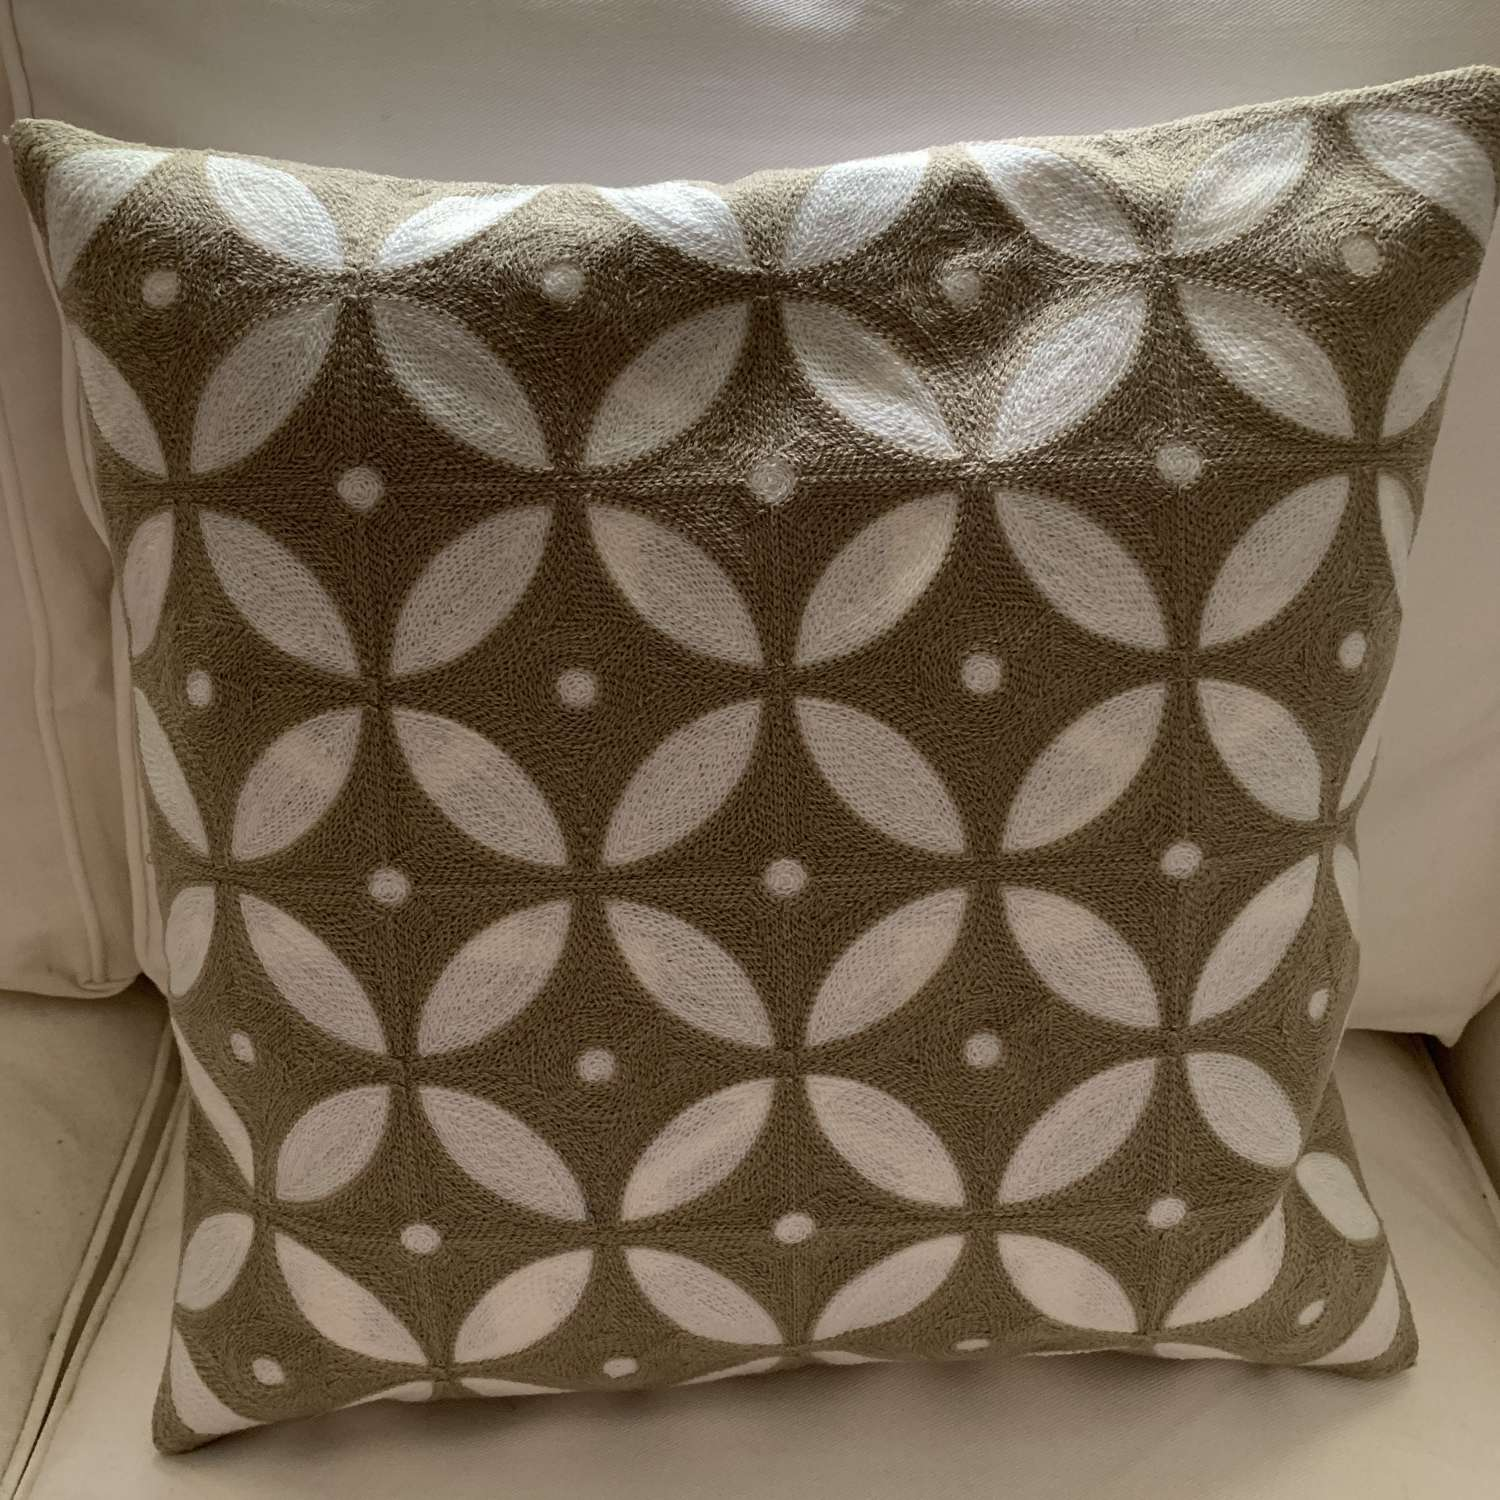 Taupe crewel work cushion with feather pad